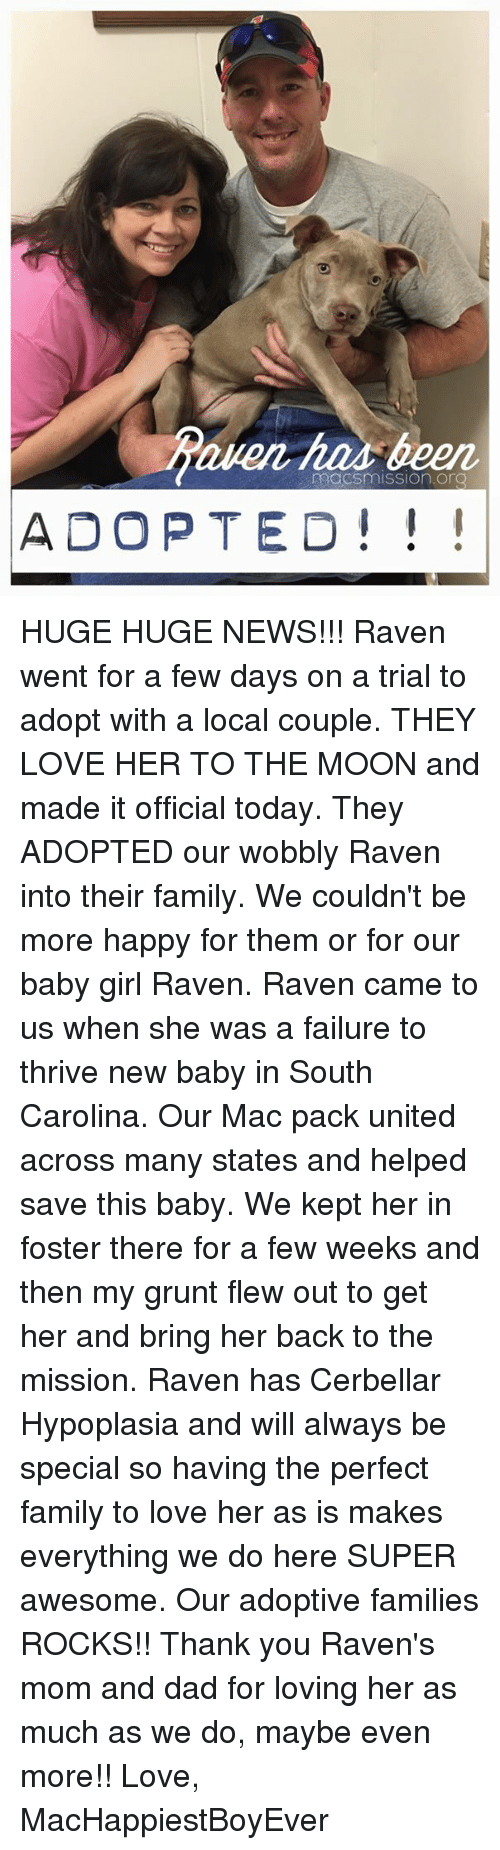 Memes, 🤖, and Mac: macsmission.OnQ  ADOPTED HUGE HUGE NEWS!!! Raven went for a few days on a trial to adopt with a local couple. THEY LOVE HER TO THE MOON and made it official today. They ADOPTED our wobbly Raven into their family. We couldn't be more happy for them or for our baby girl Raven. Raven came to us when she was a failure to thrive new baby in South Carolina. Our Mac pack united across many states and helped save this baby. We kept her in foster there for a few weeks and then my grunt flew out to get her and bring her back to the mission. Raven has Cerbellar Hypoplasia and will always be special so having the perfect family to love her as is makes everything we do here SUPER awesome. Our adoptive families ROCKS!! Thank you Raven's mom and dad for loving her as much as we do, maybe even more!!   Love, MacHappiestBoyEver